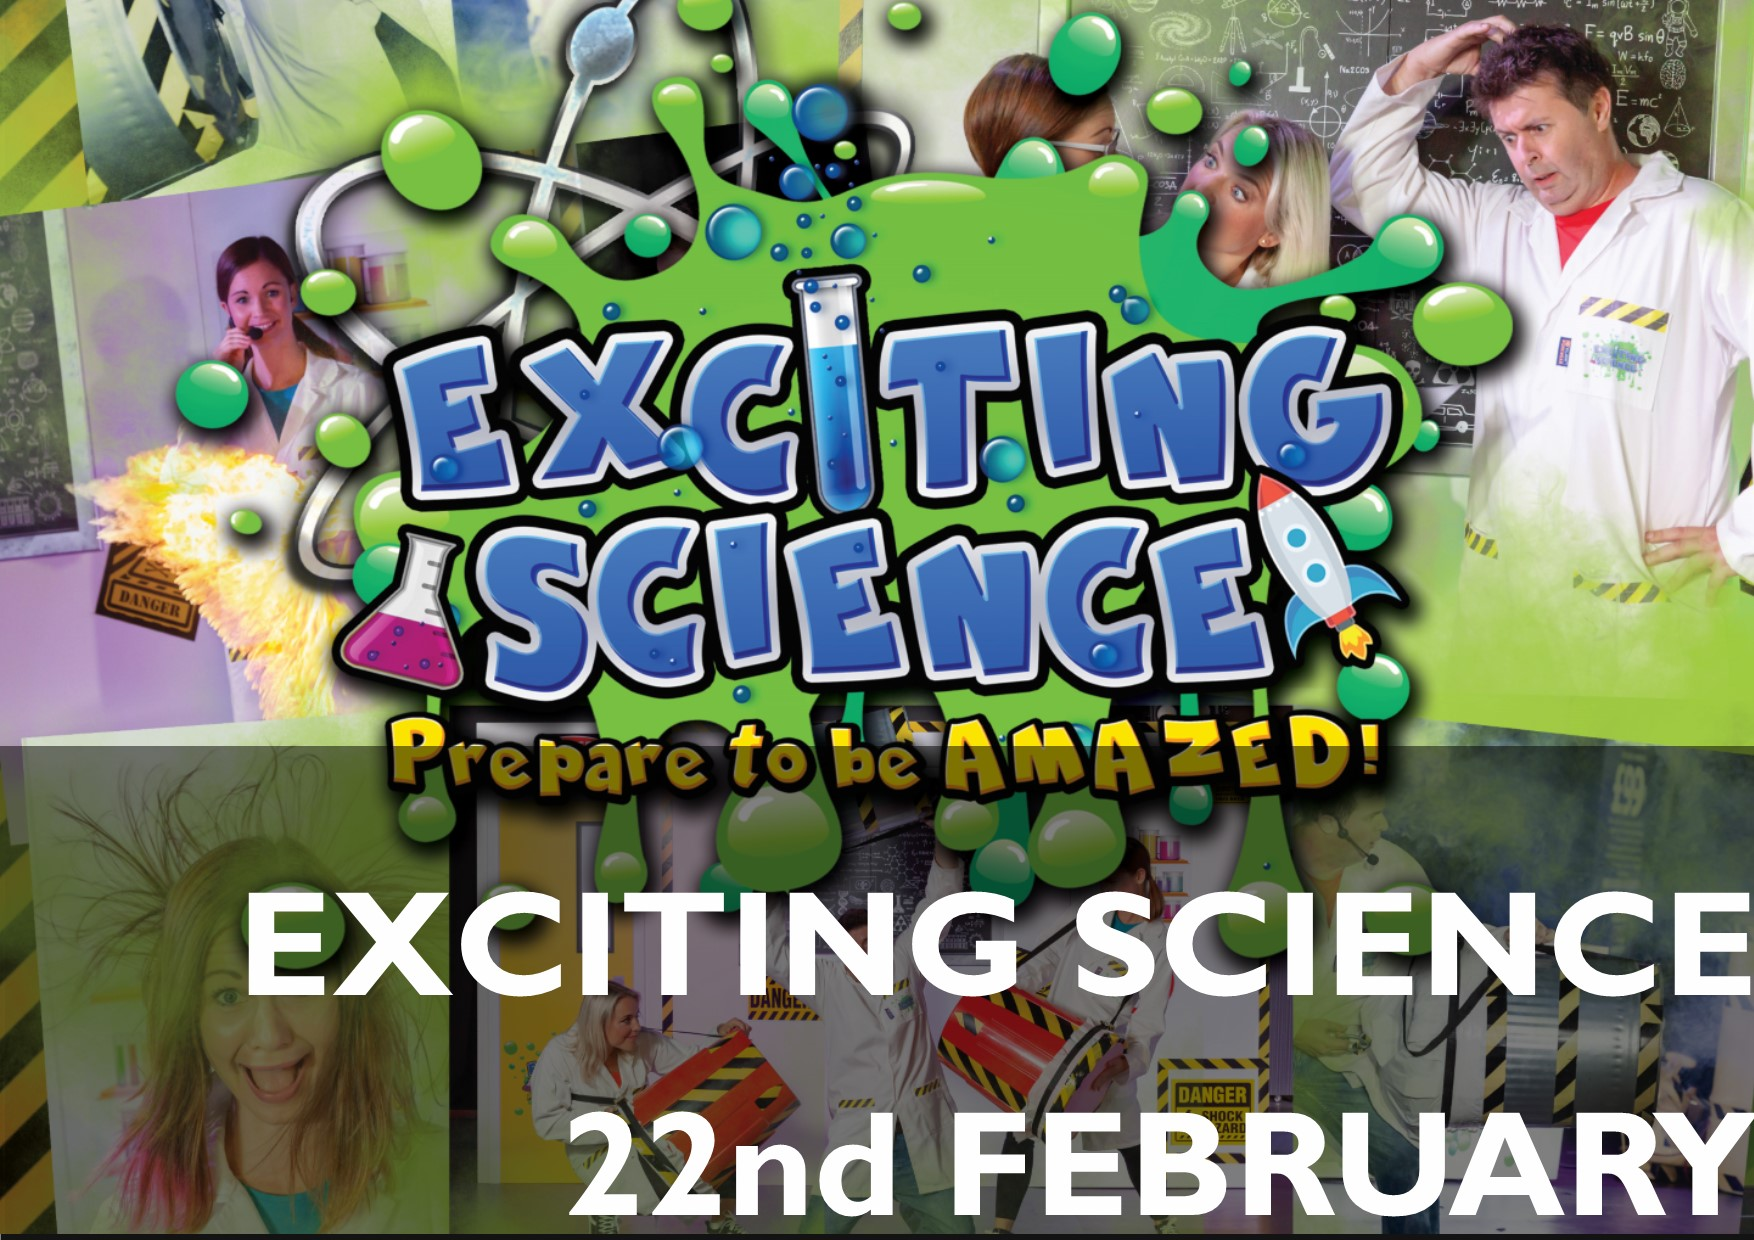 Exciting Science